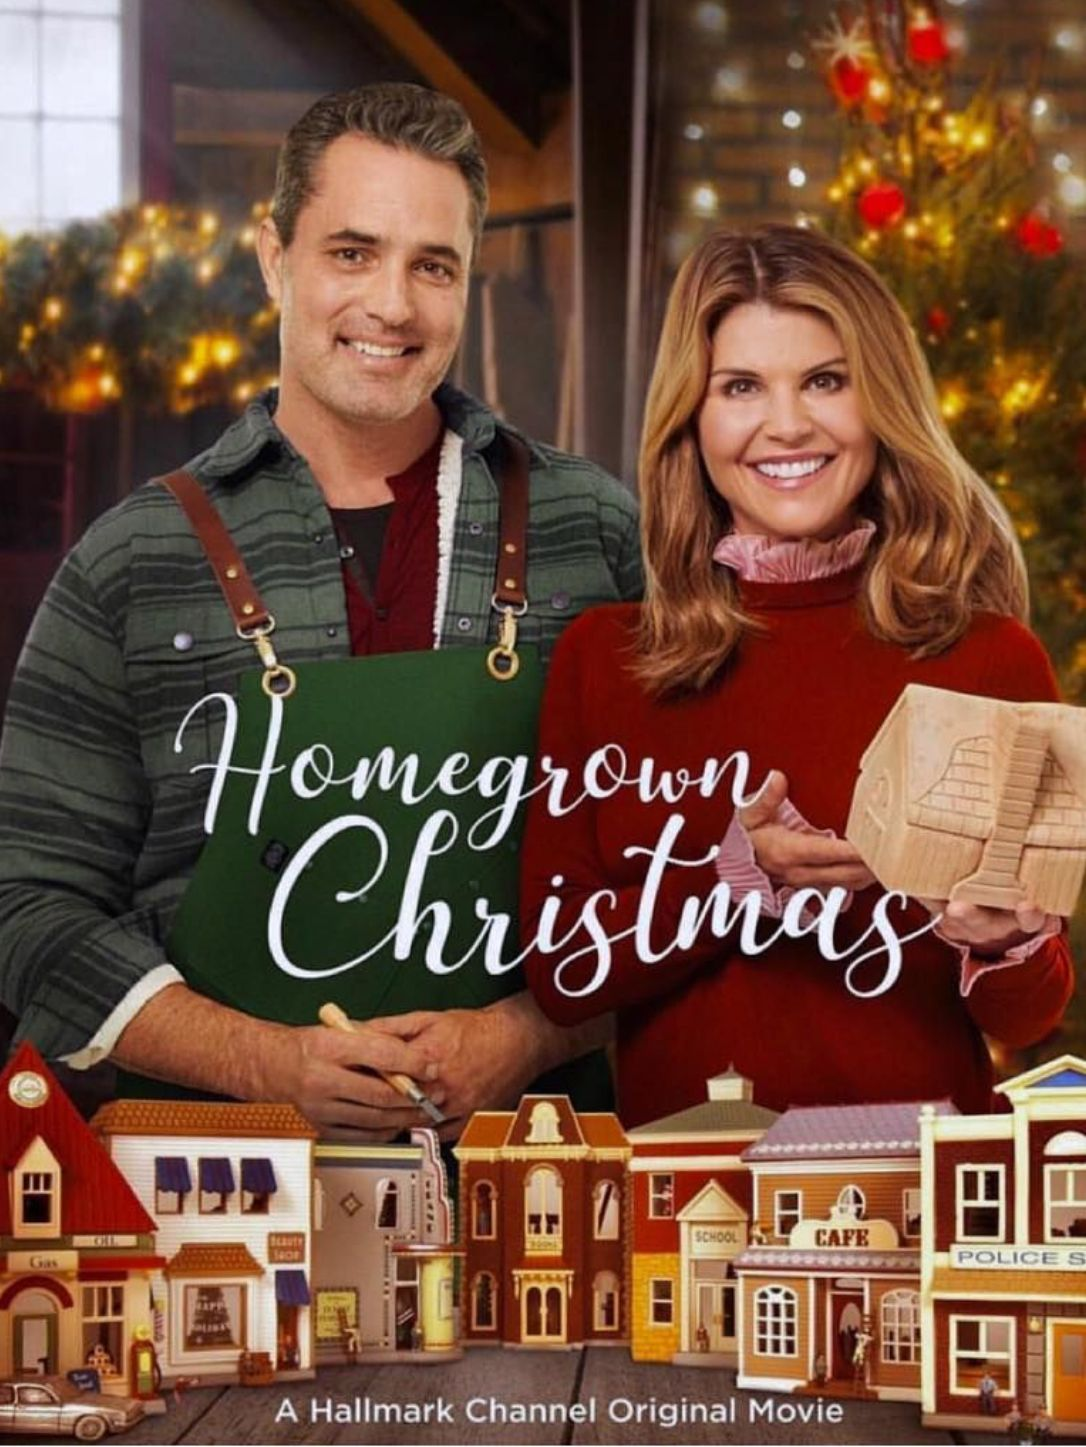 Pin By Ayat Nakhili On Movies Christmas Movies Hallmark Christmas Movies Hallmark Movies